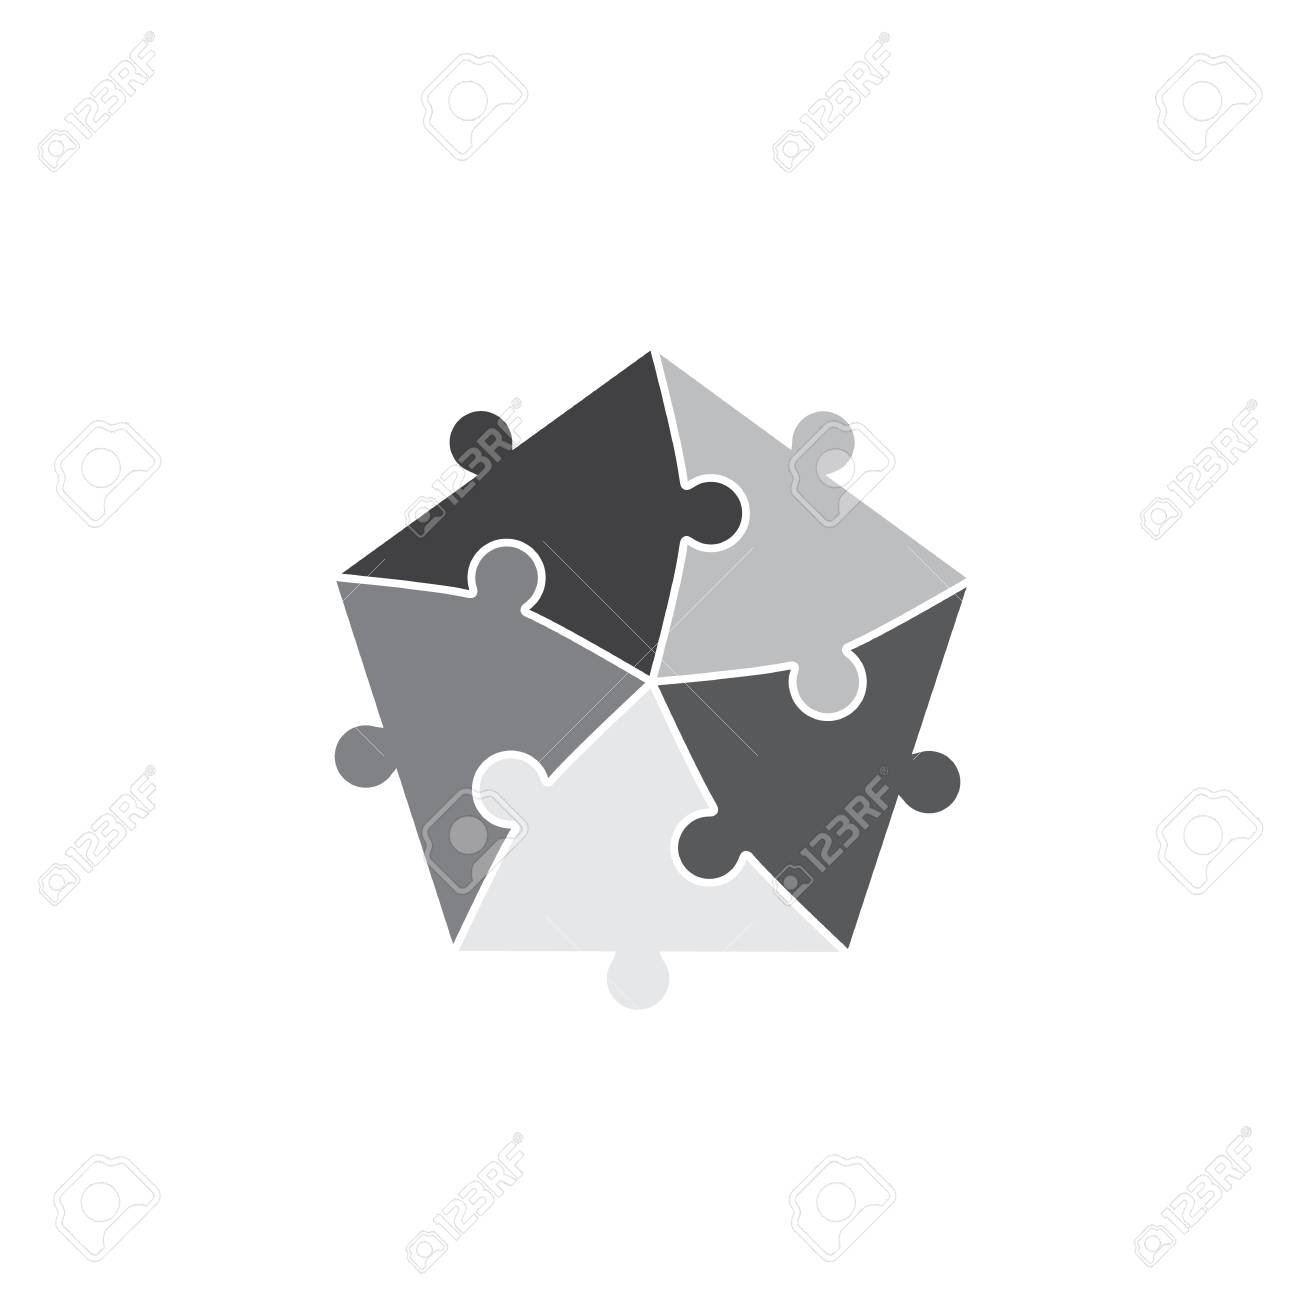 Jigsaw Puzzle Pieces Background Royalty Free Cliparts, Vectors, And ...